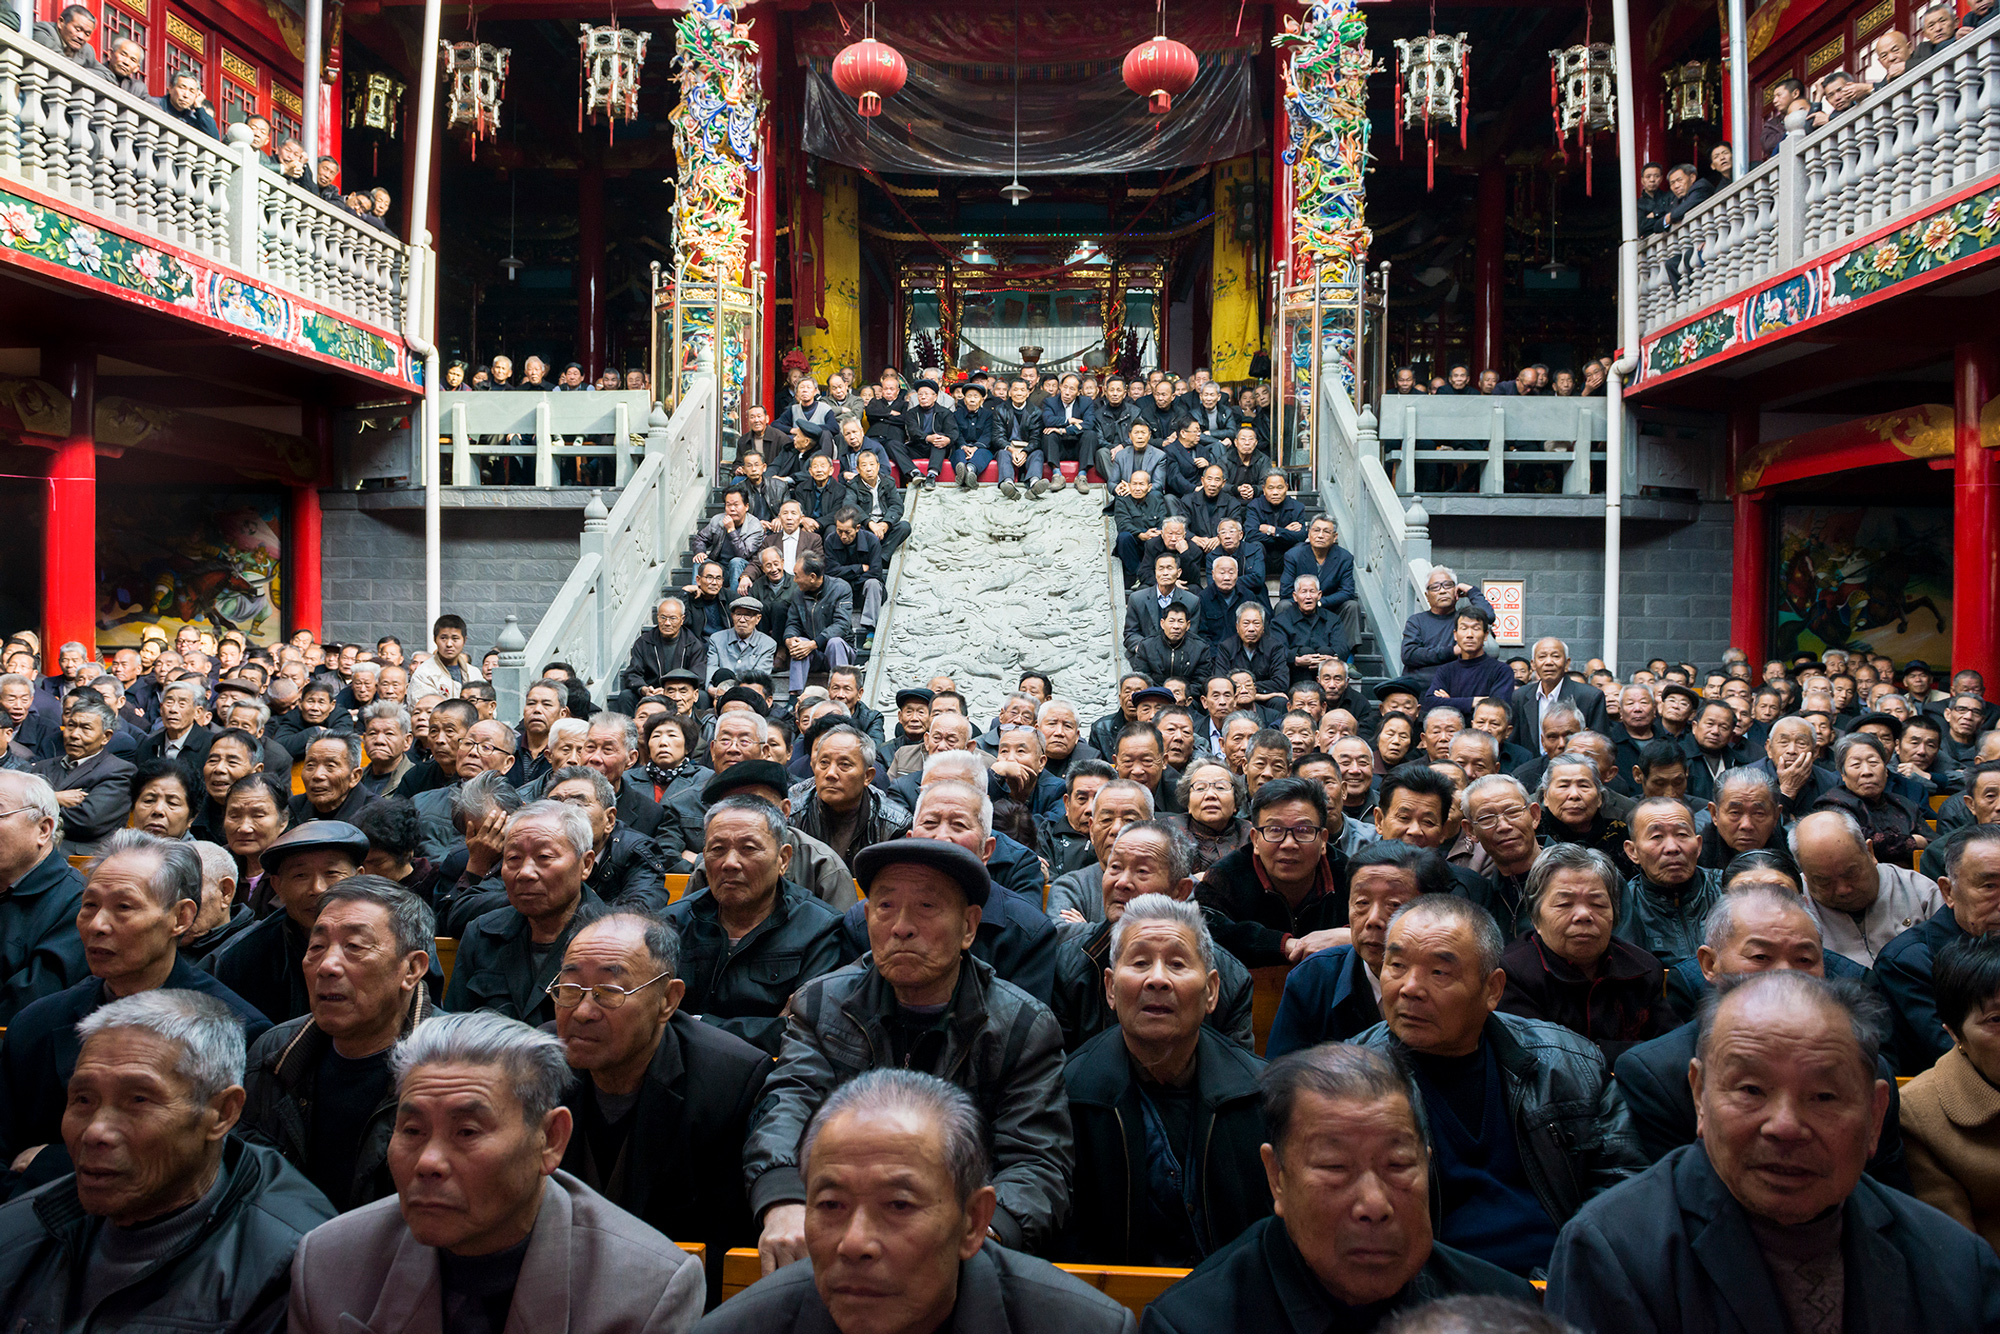 Elderly audience members watch Chinese opera at an ancestral shrine in Tingtian sub-district, November 25, 2013.